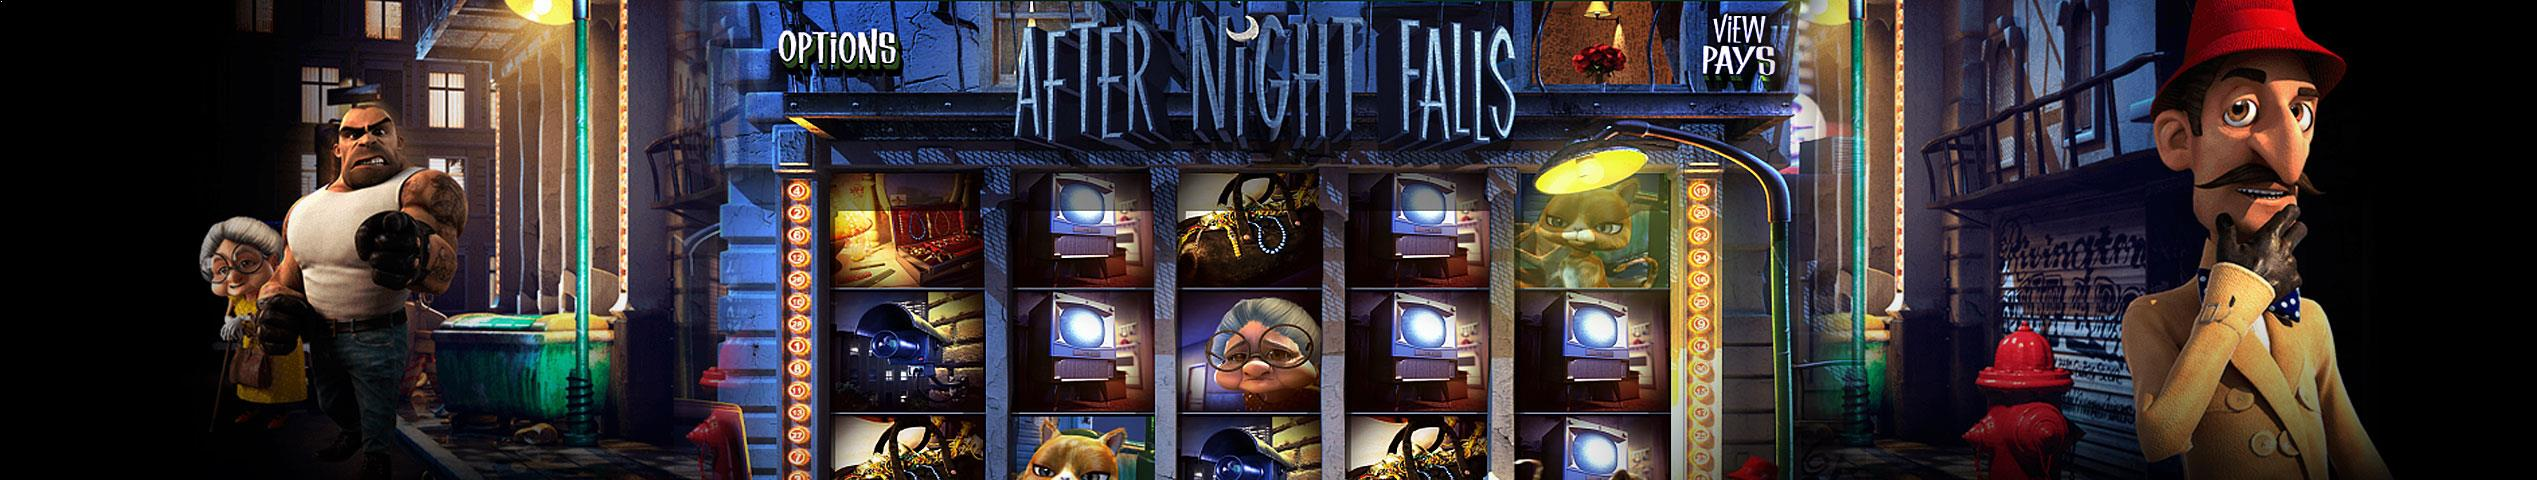 After Night Falls Multa Baft jocuri slot slider Betsoft